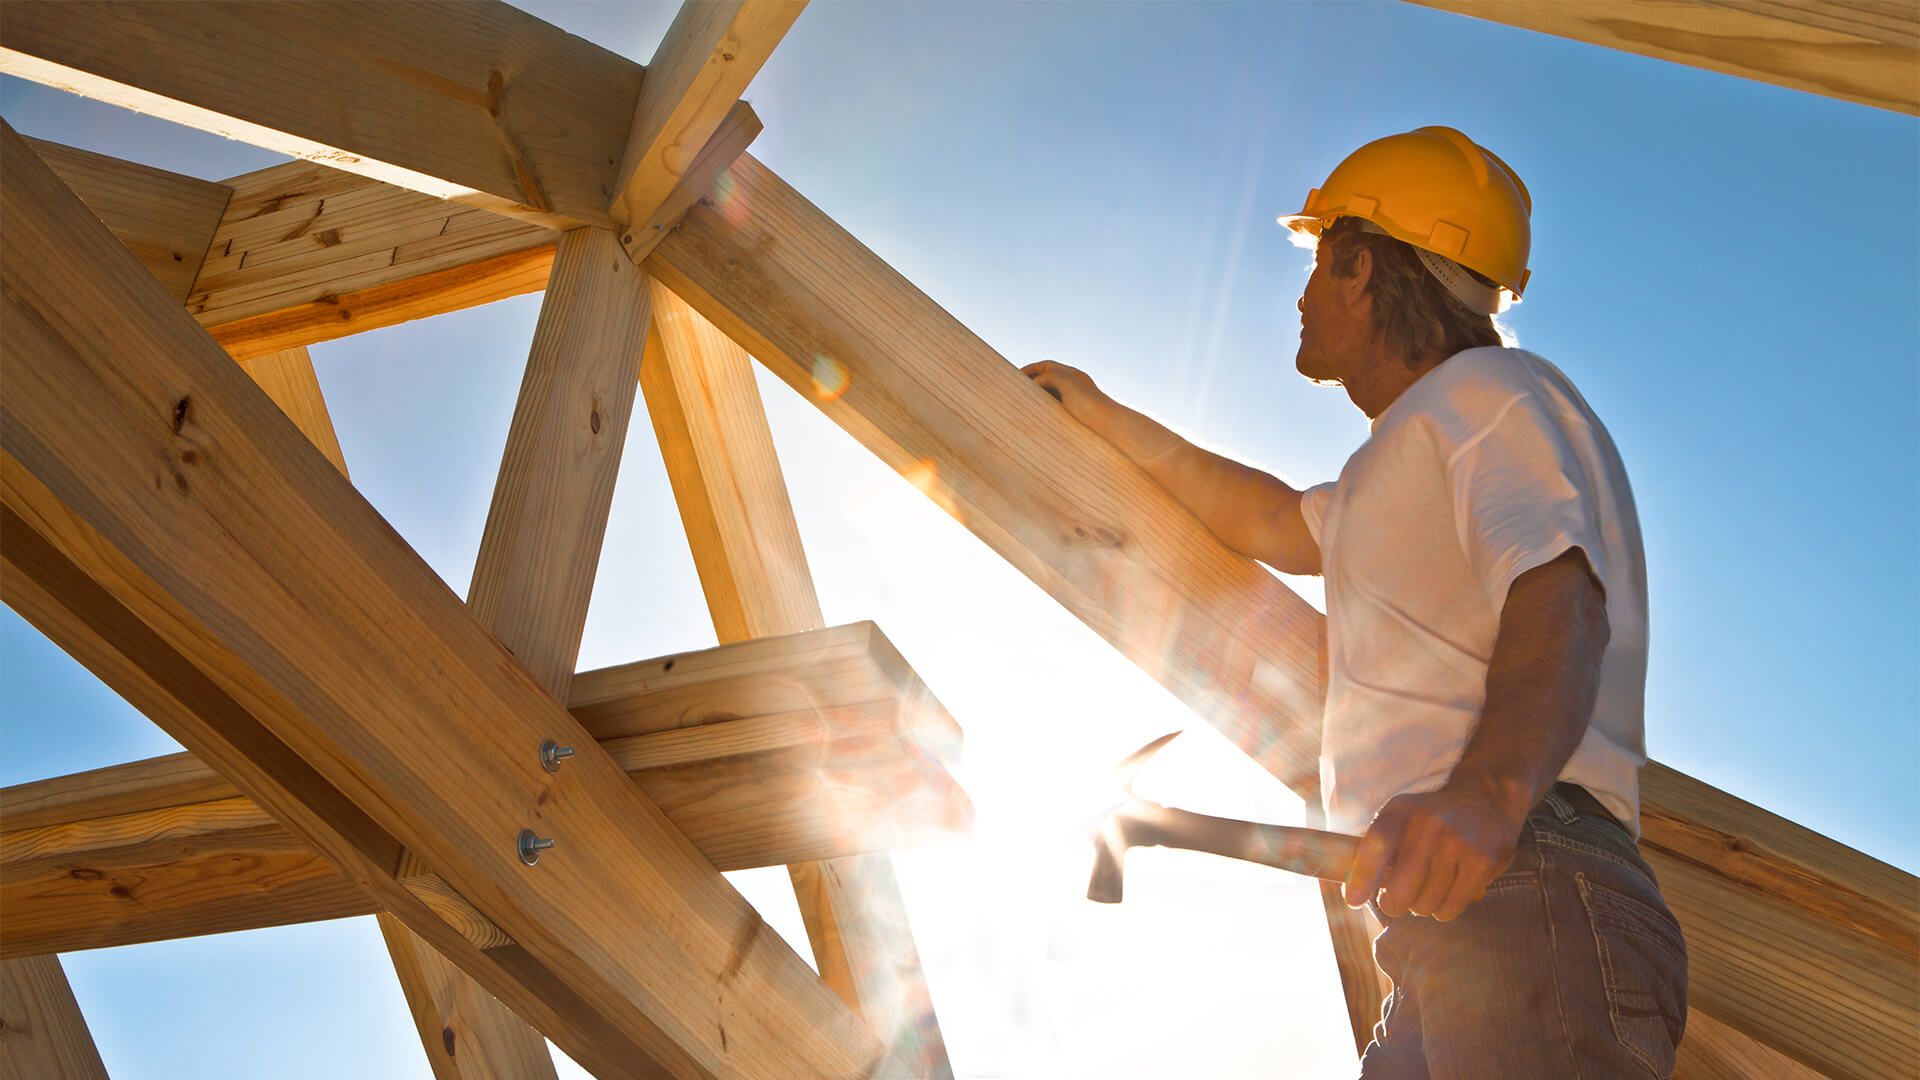 Man working in construction, hammering a wooden house frame in place with the sun in the background